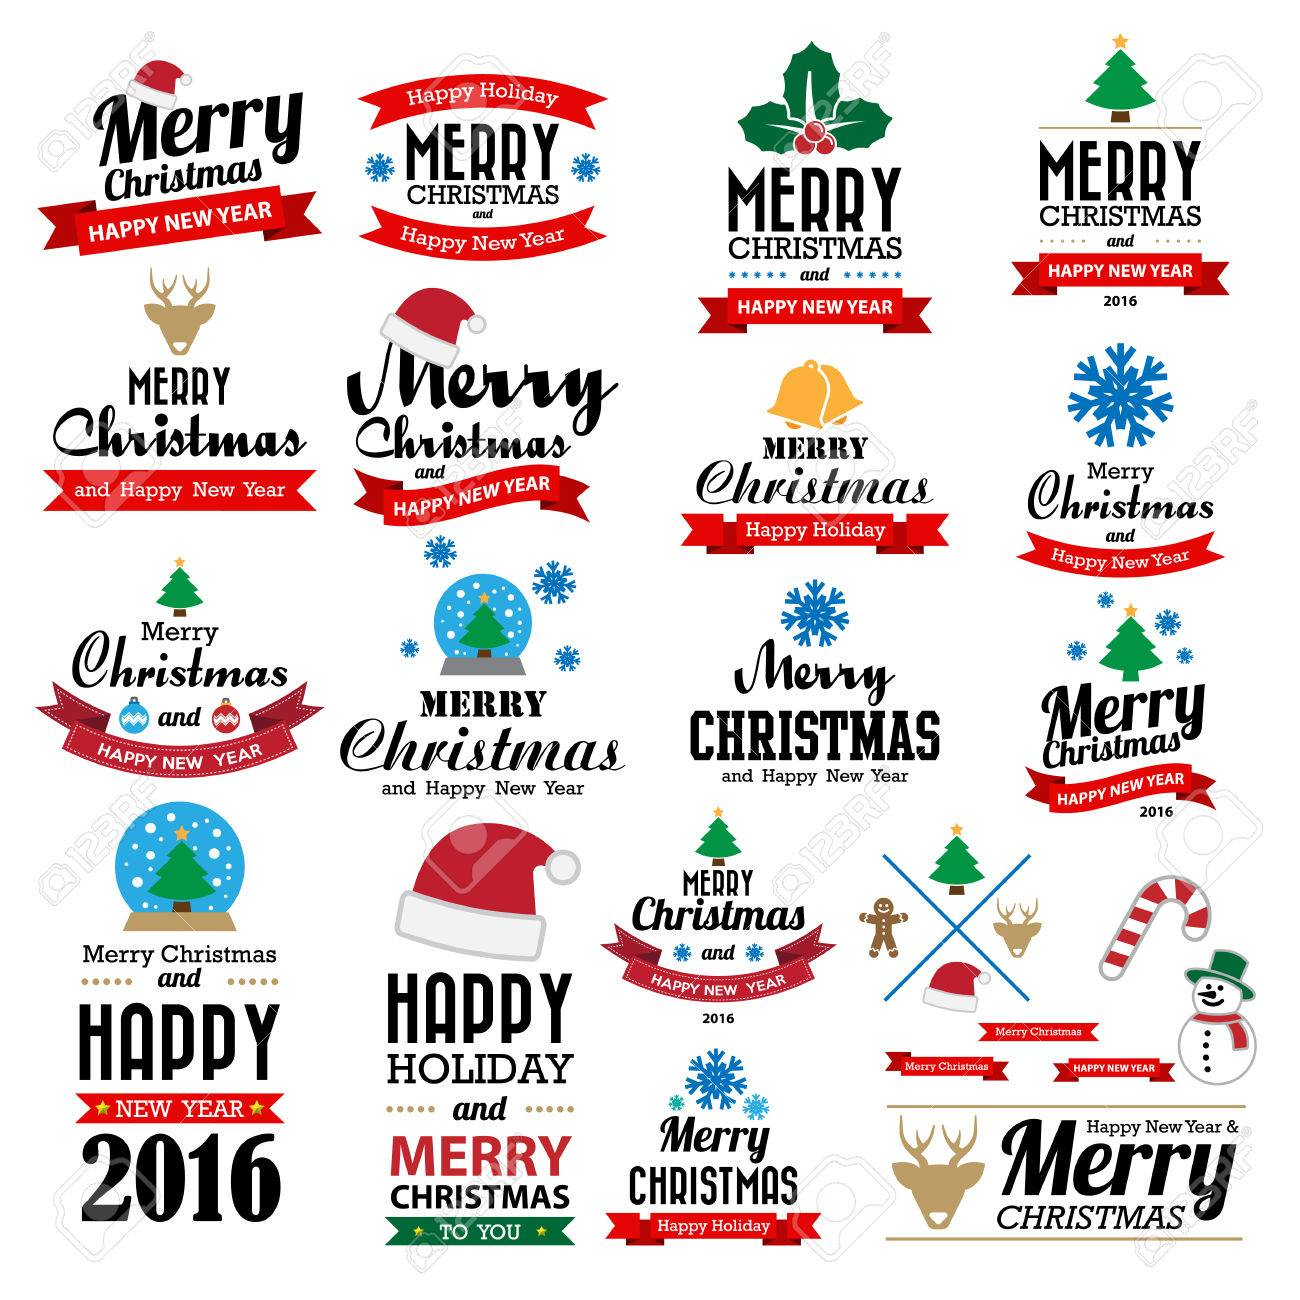 Merry Christmas and Happy New Year typographic background,Illustration - 46777939